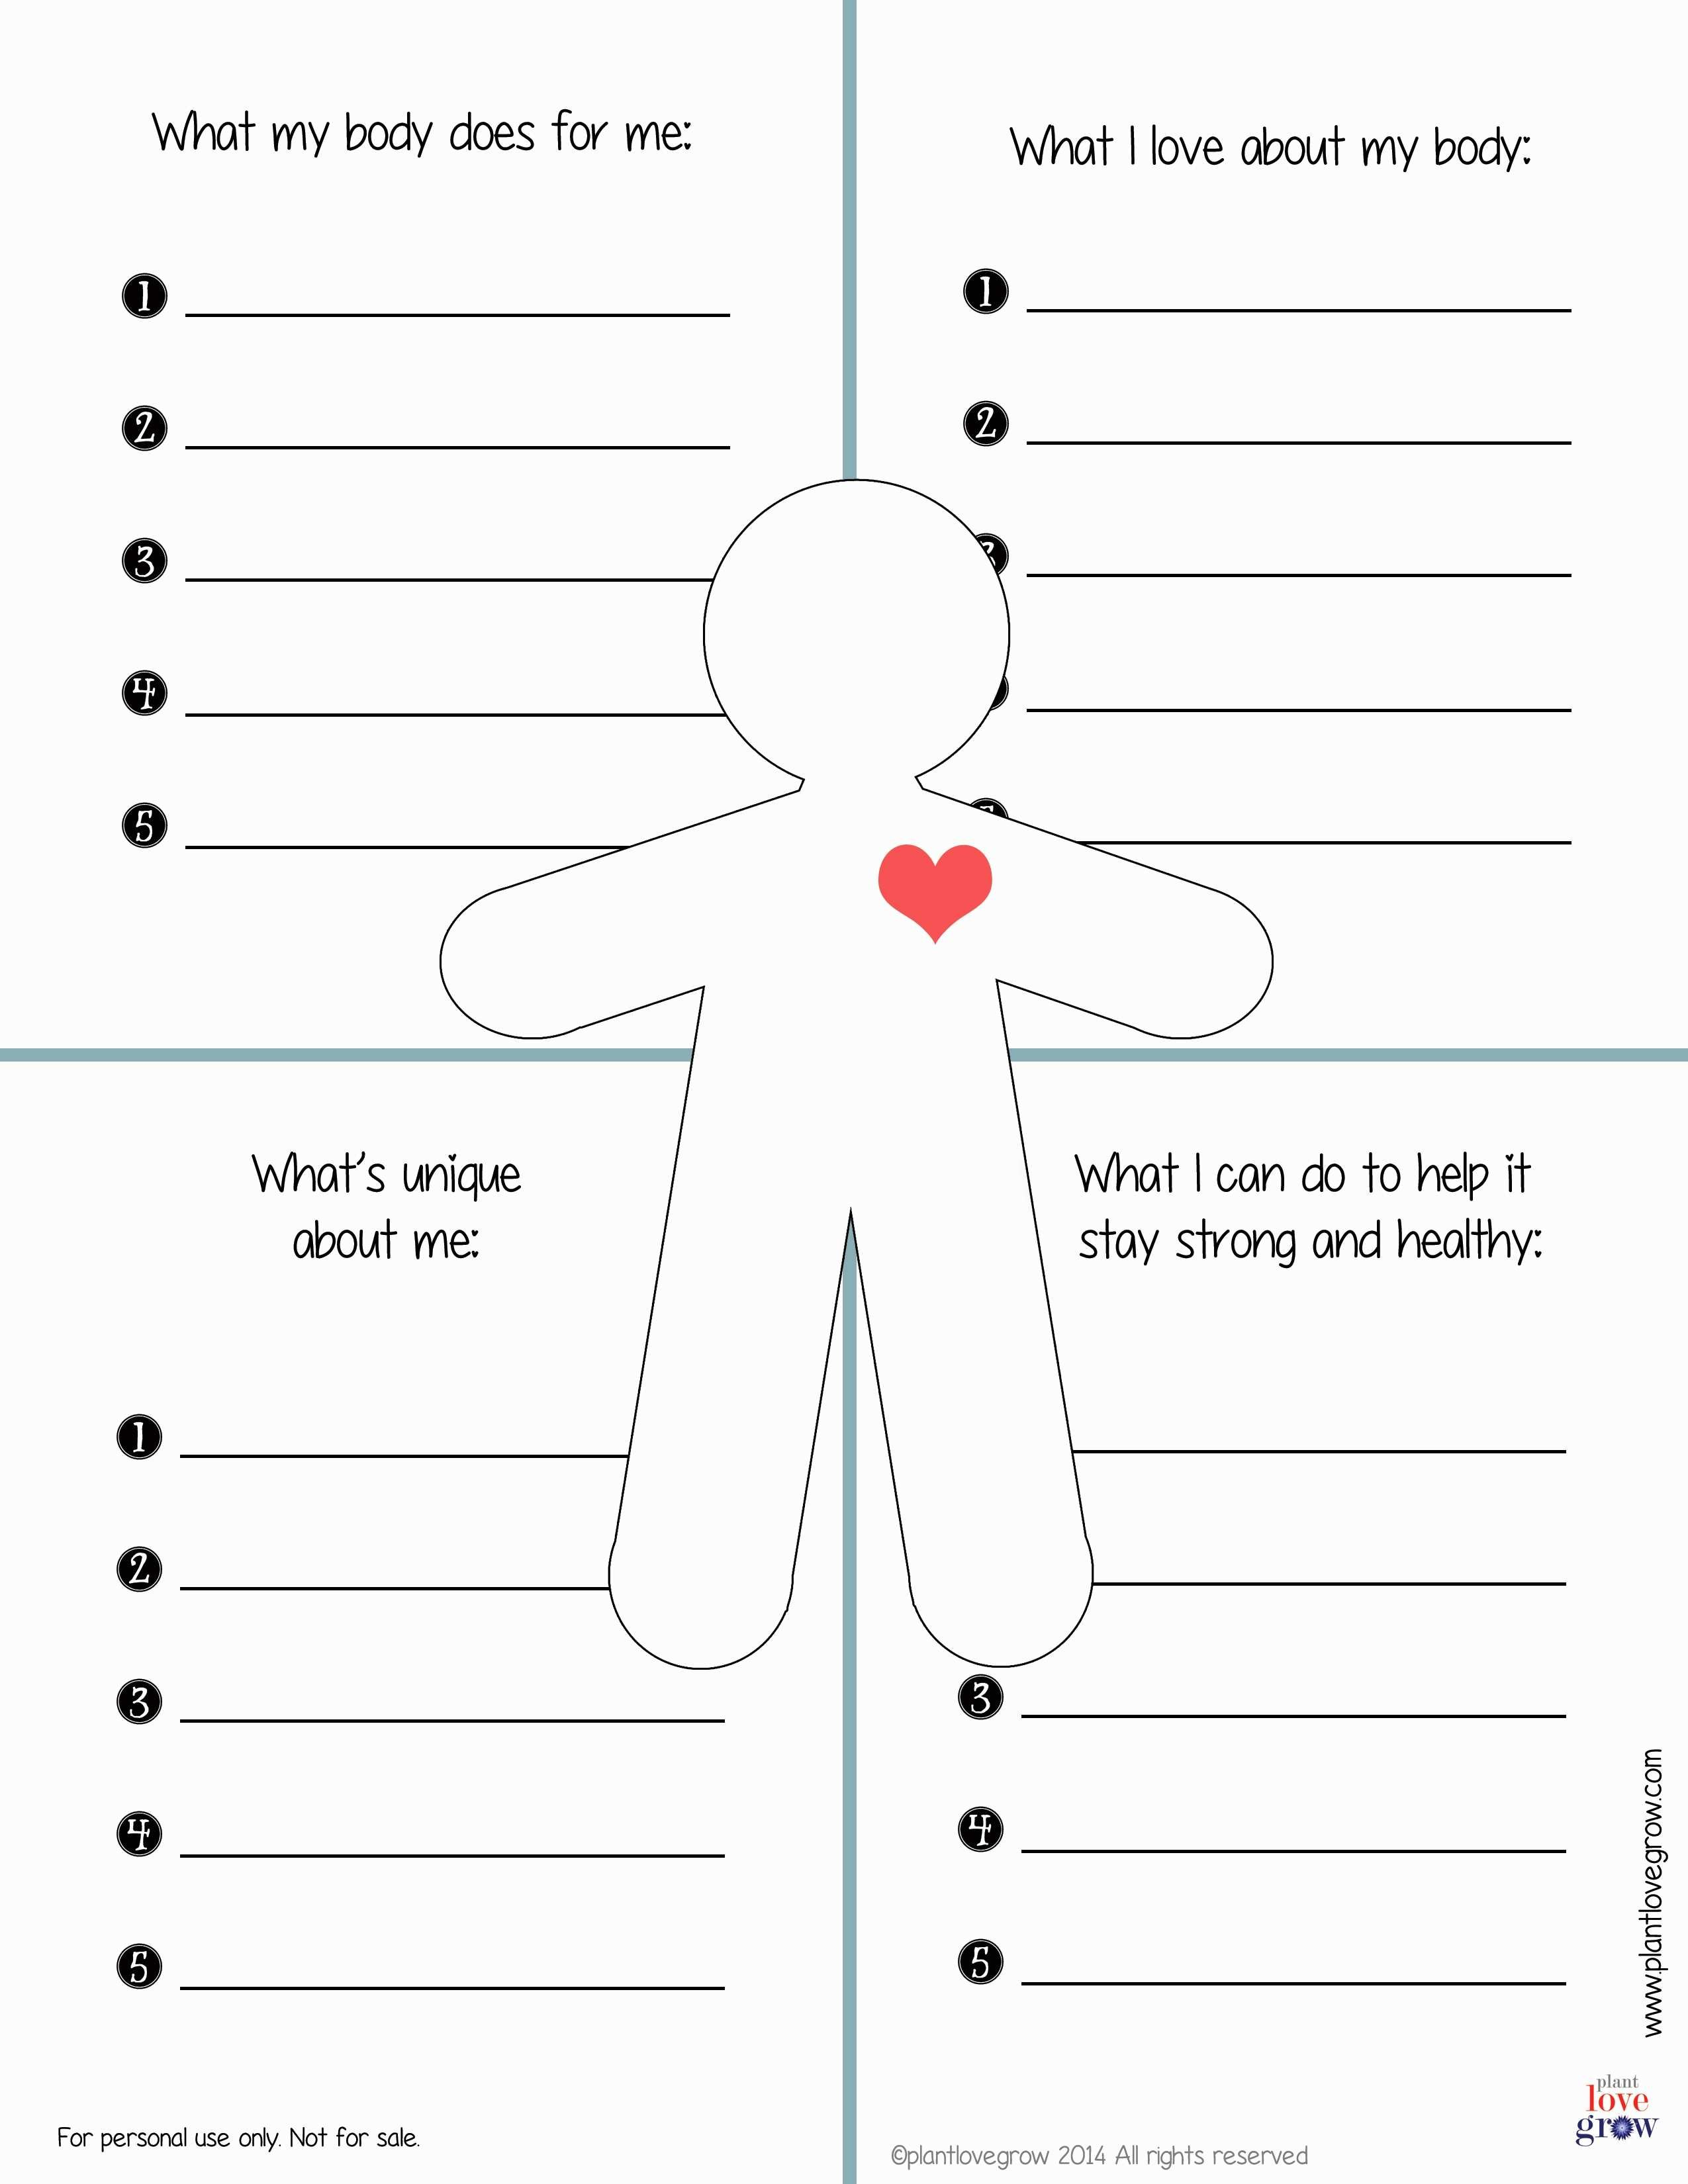 30 Self Esteem Worksheets To Print  Kittybabylove As Well As Improving Self Esteem Worksheets